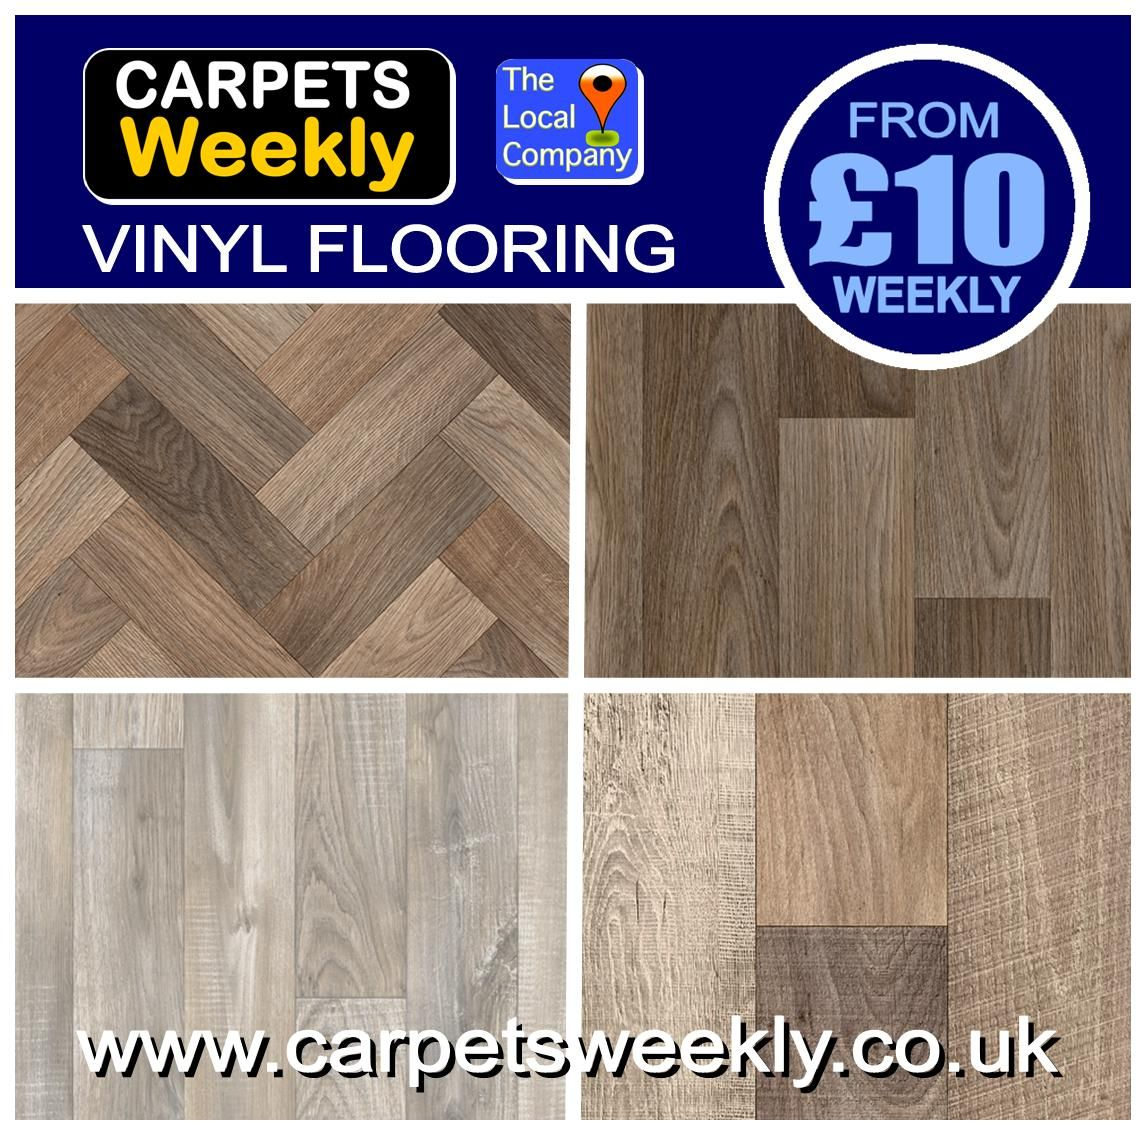 VINYL FLOORING FROM £10 A WEEK CARPETS WEEKLY MIDDLESBROUGH